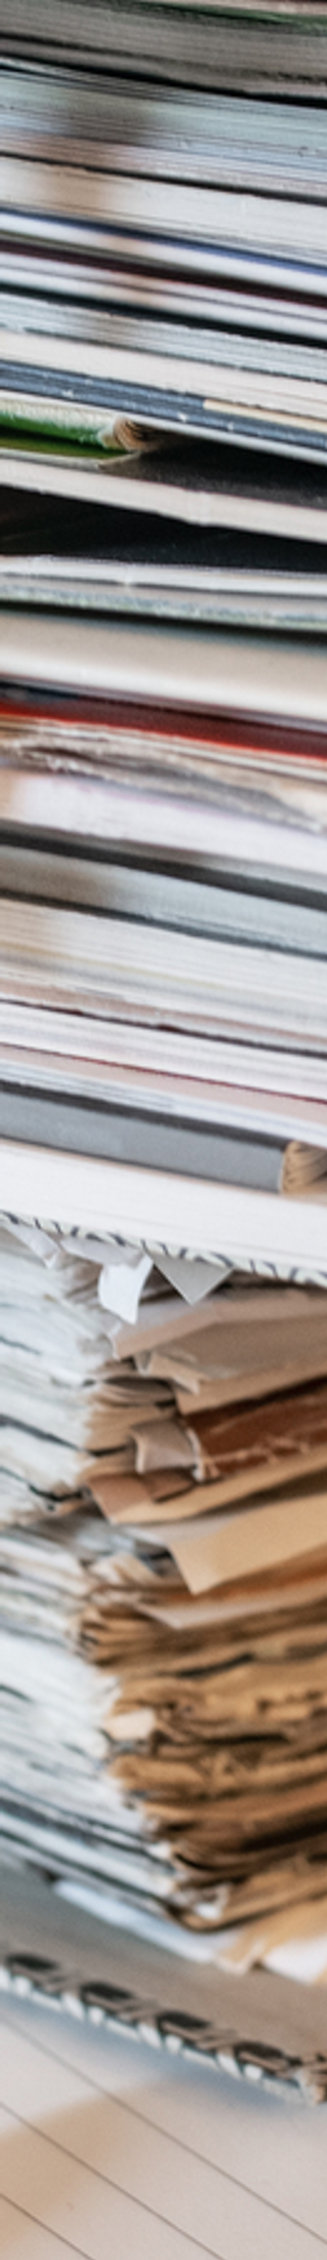 Stack of Files - eDiscovery